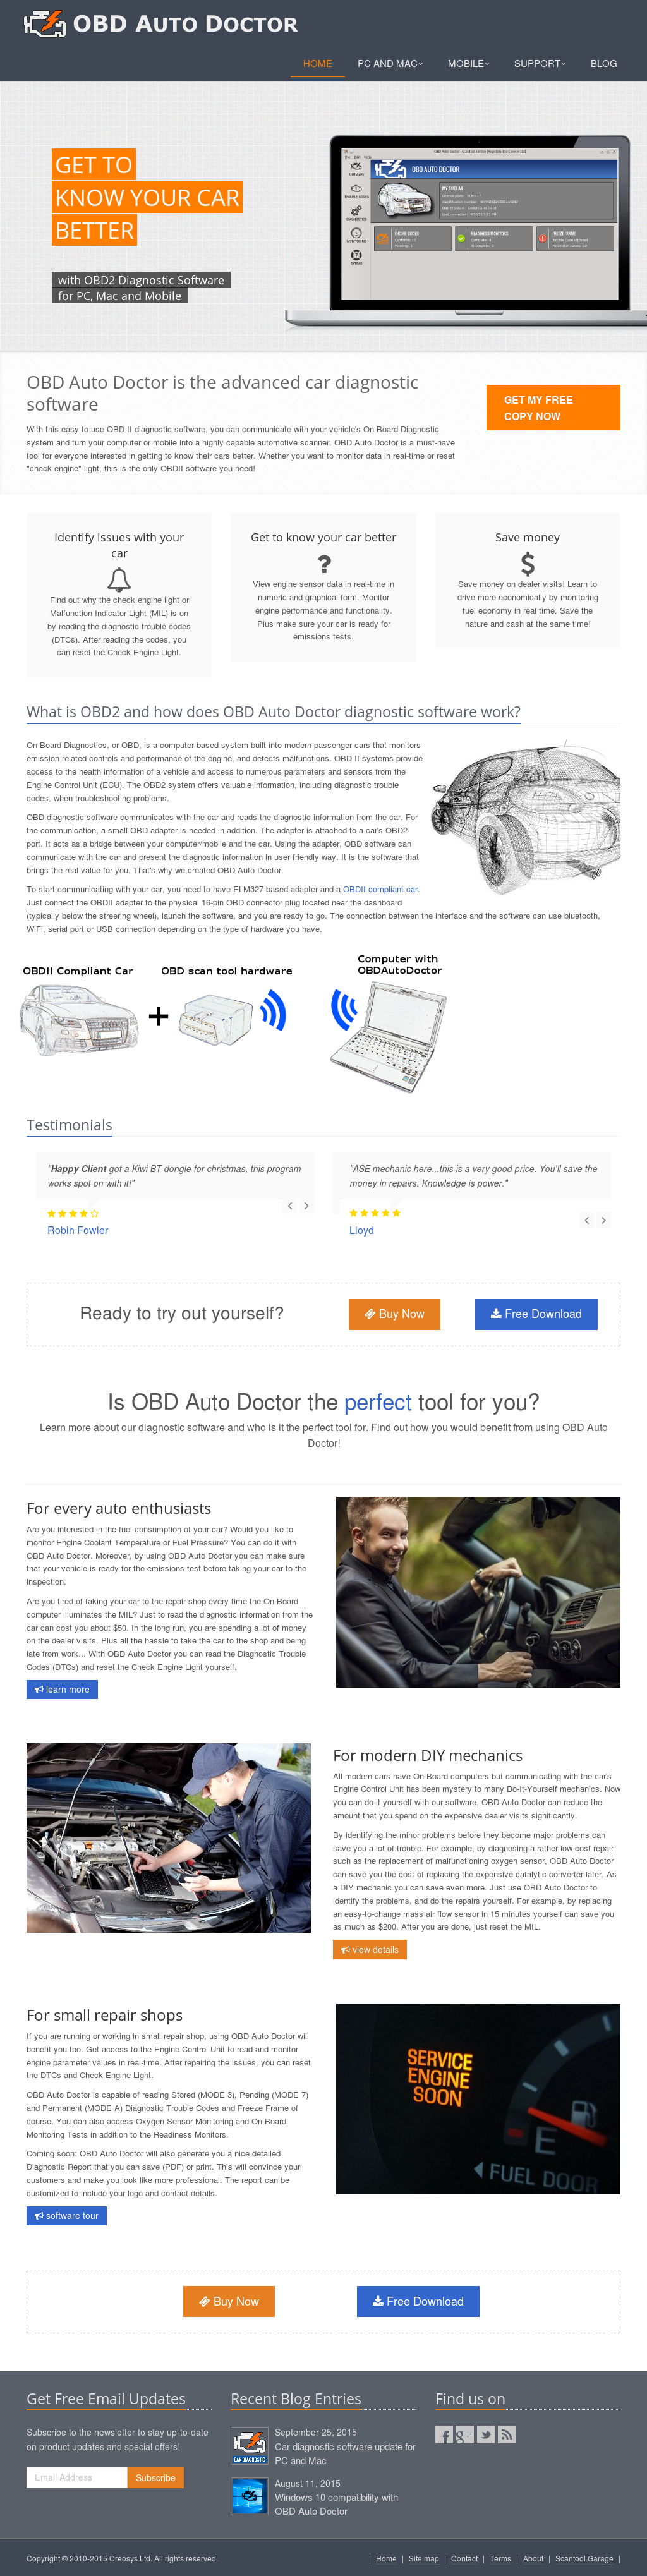 Owler Reports - OBD Auto Doctor Blog OBD2 parameters added